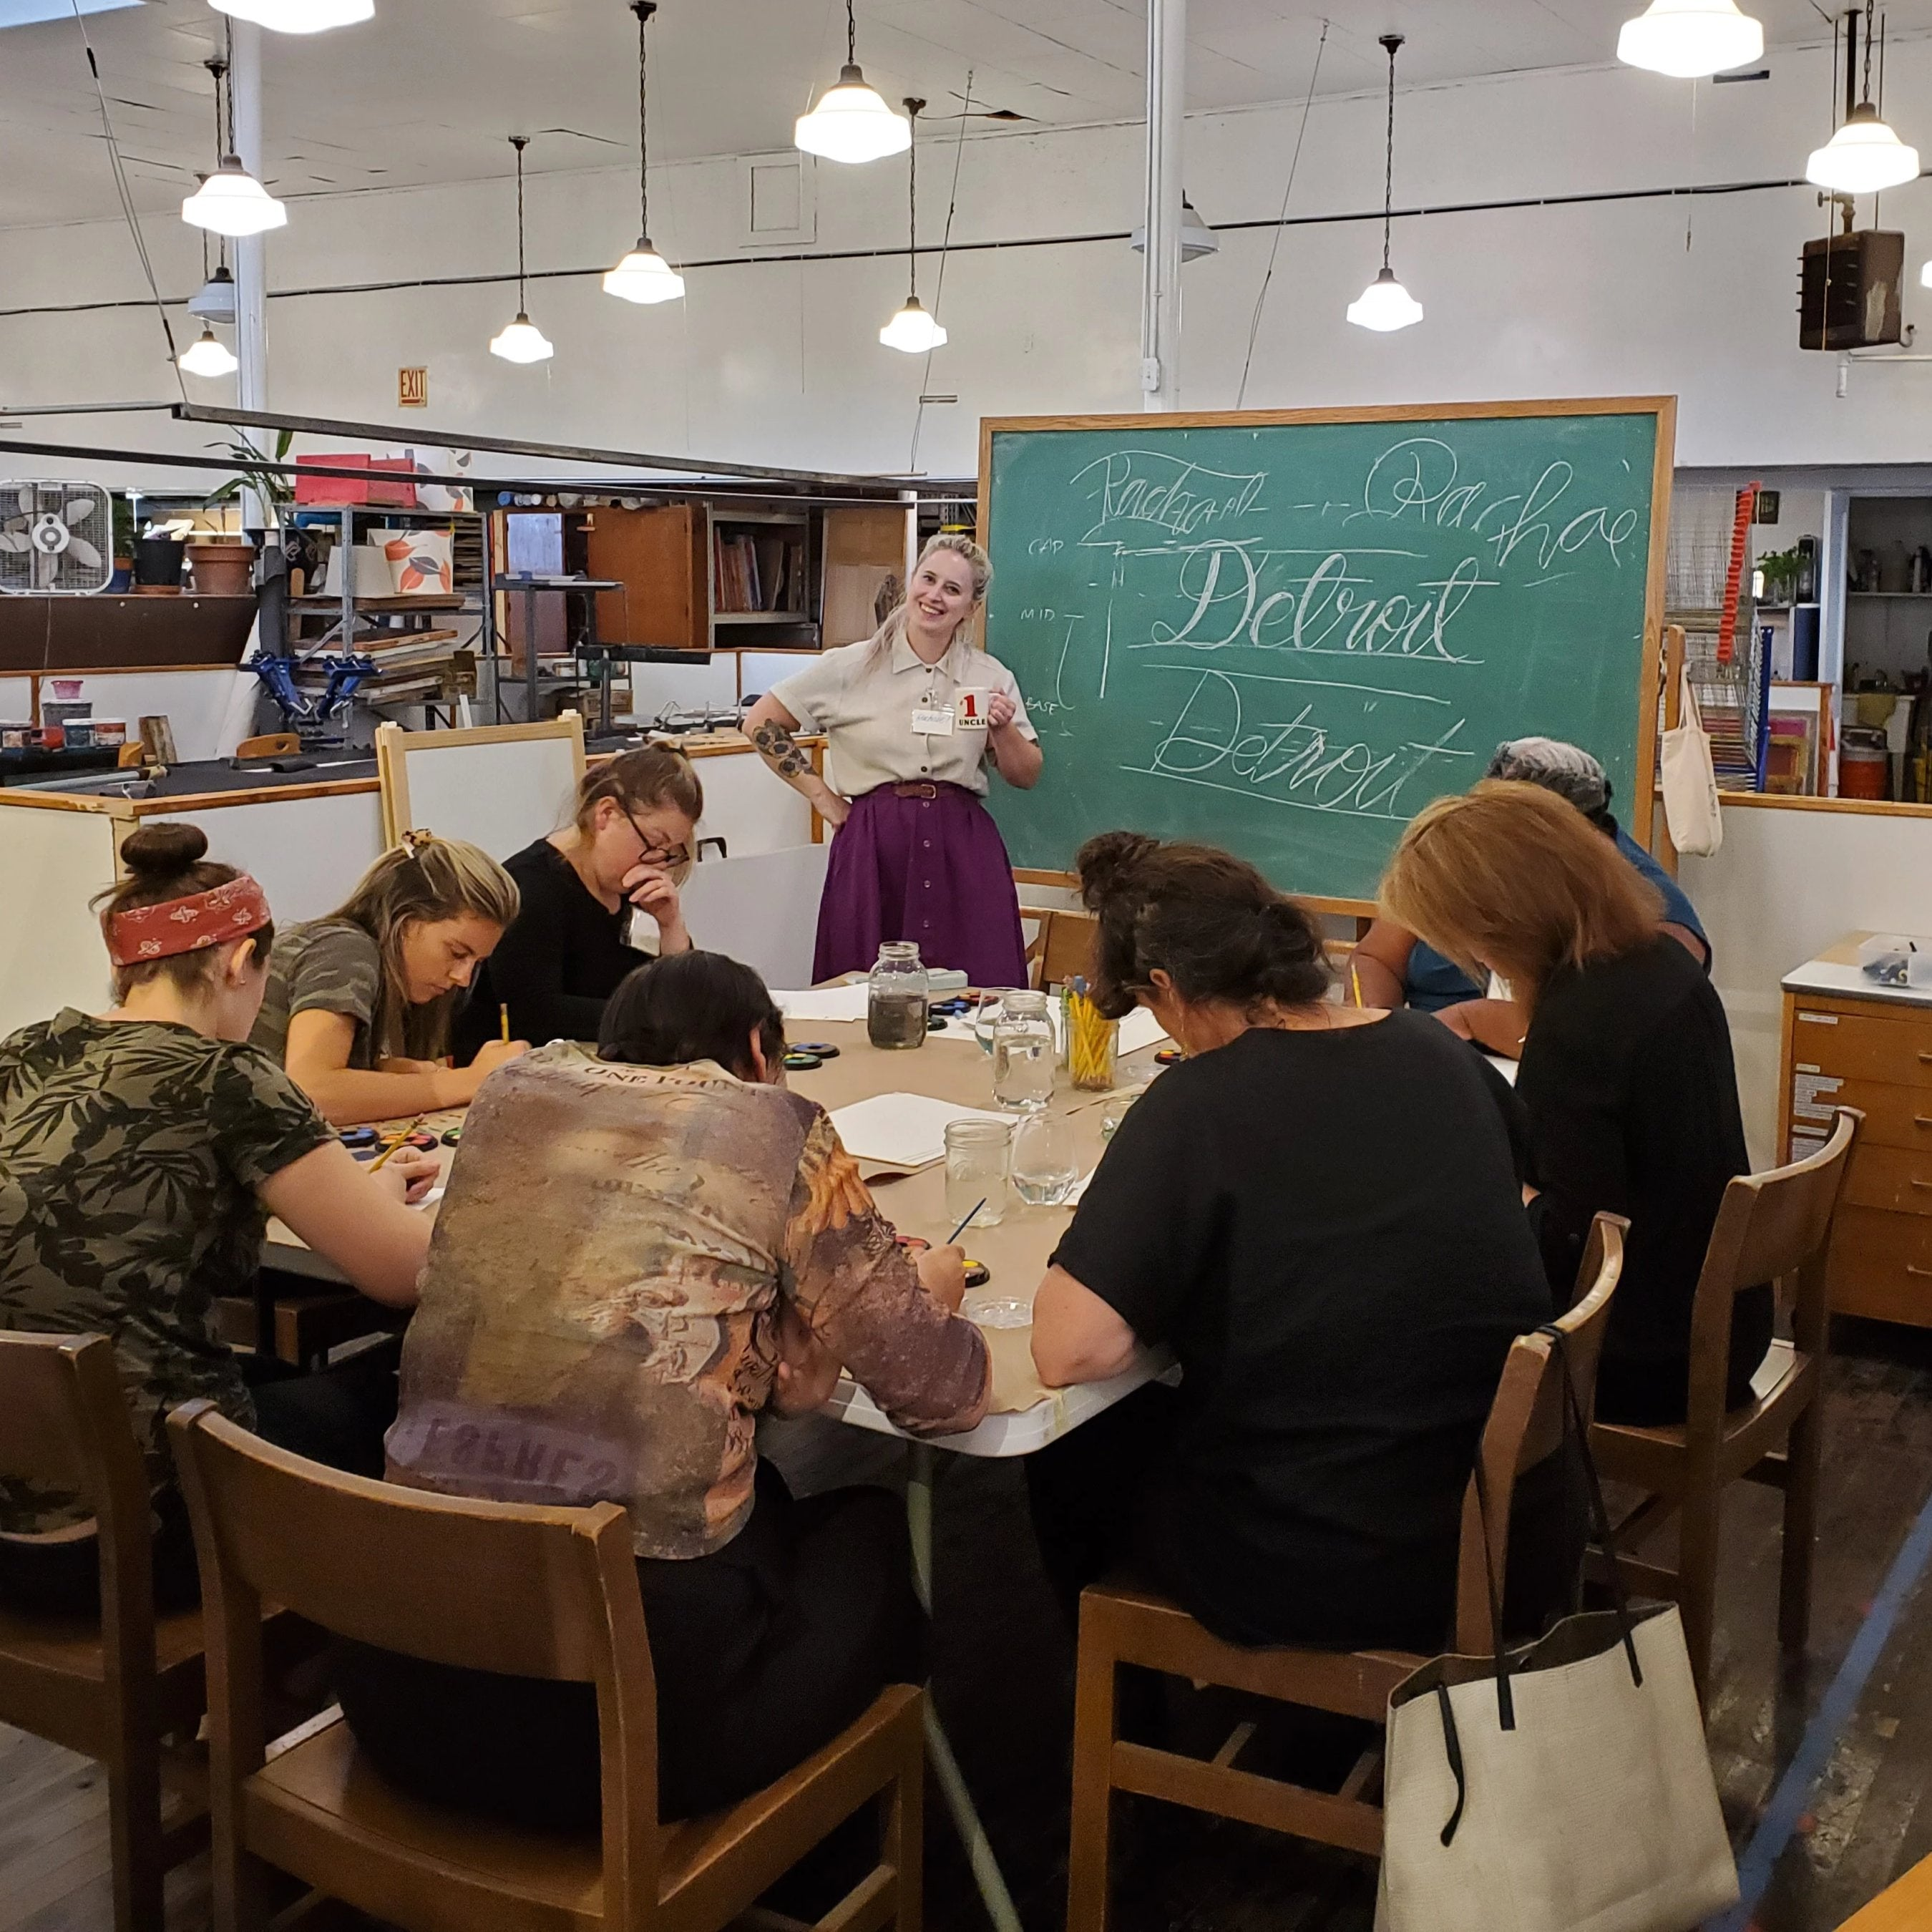 12/28 Hand Lettering Workshop: Brush + Watercolor on Saturday December 28 at 12pm